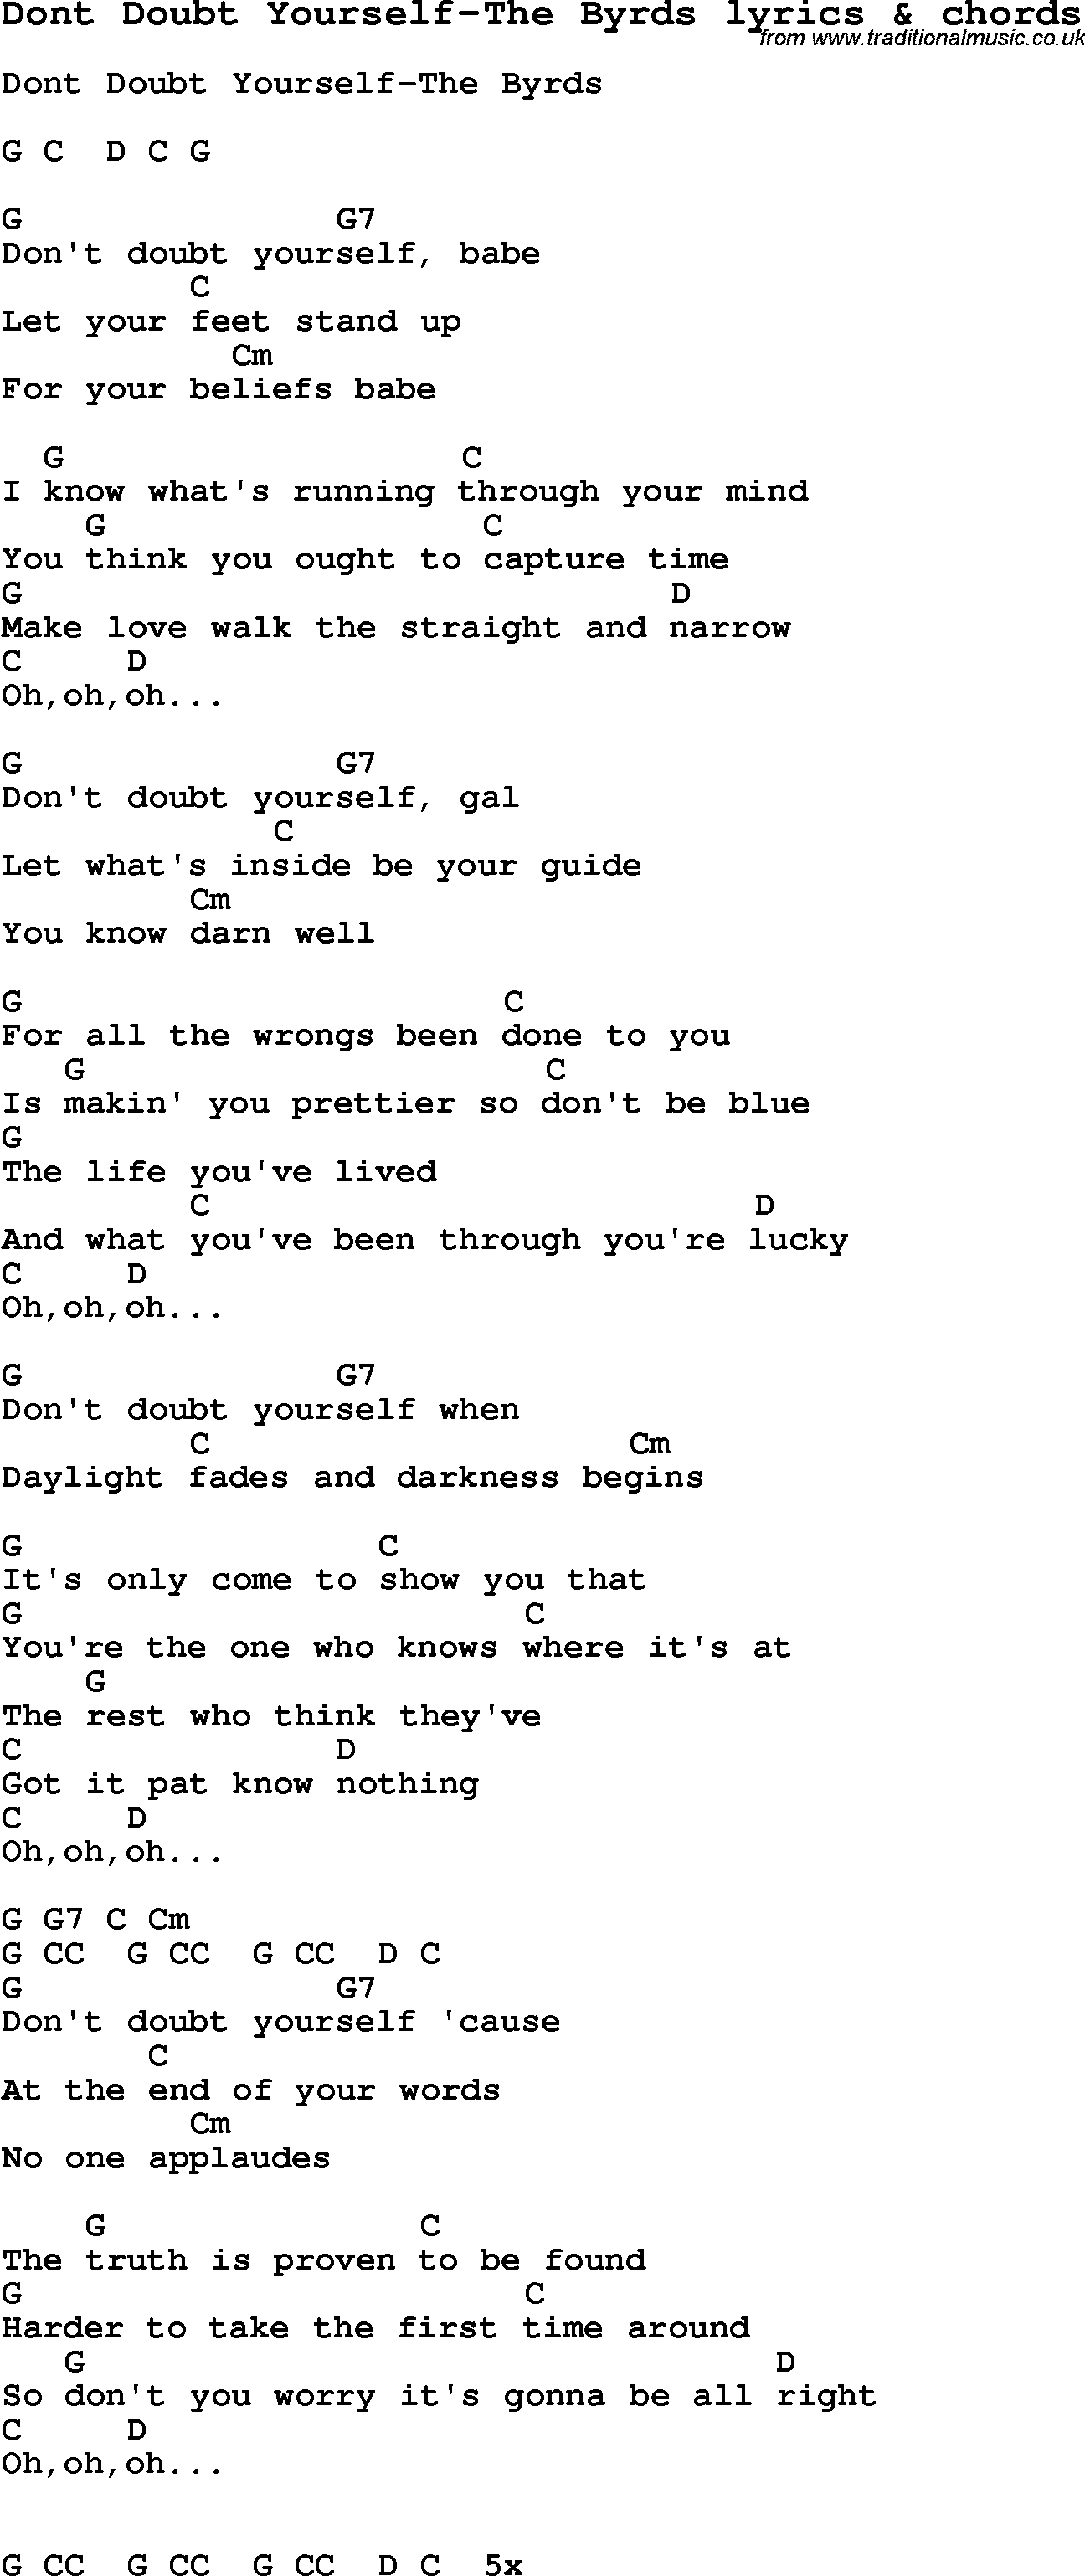 Love Song Lyrics for:Dont Doubt Yourself-The Byrds with chords.